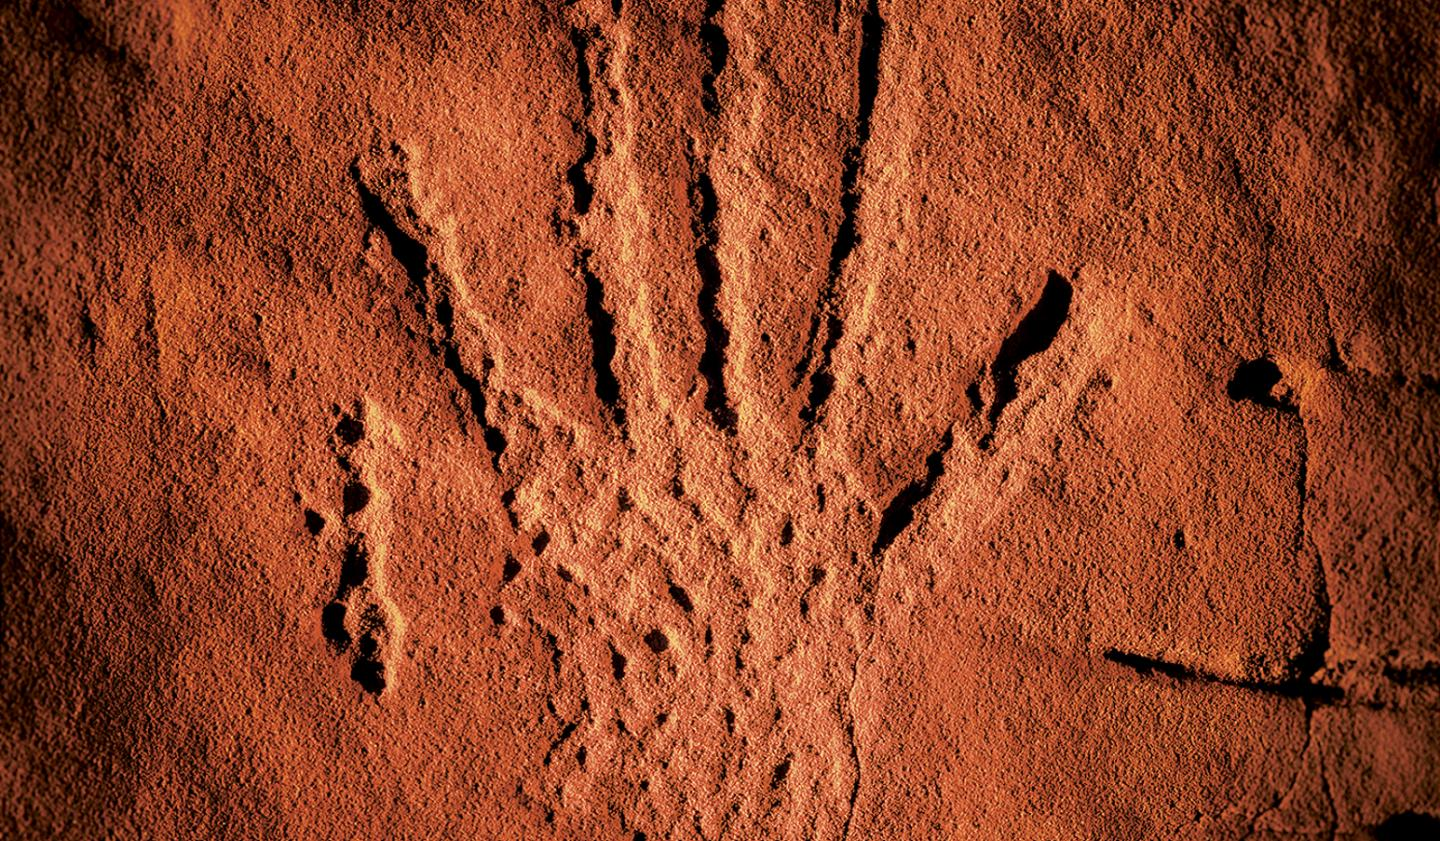 Pecking, rock art, hand print